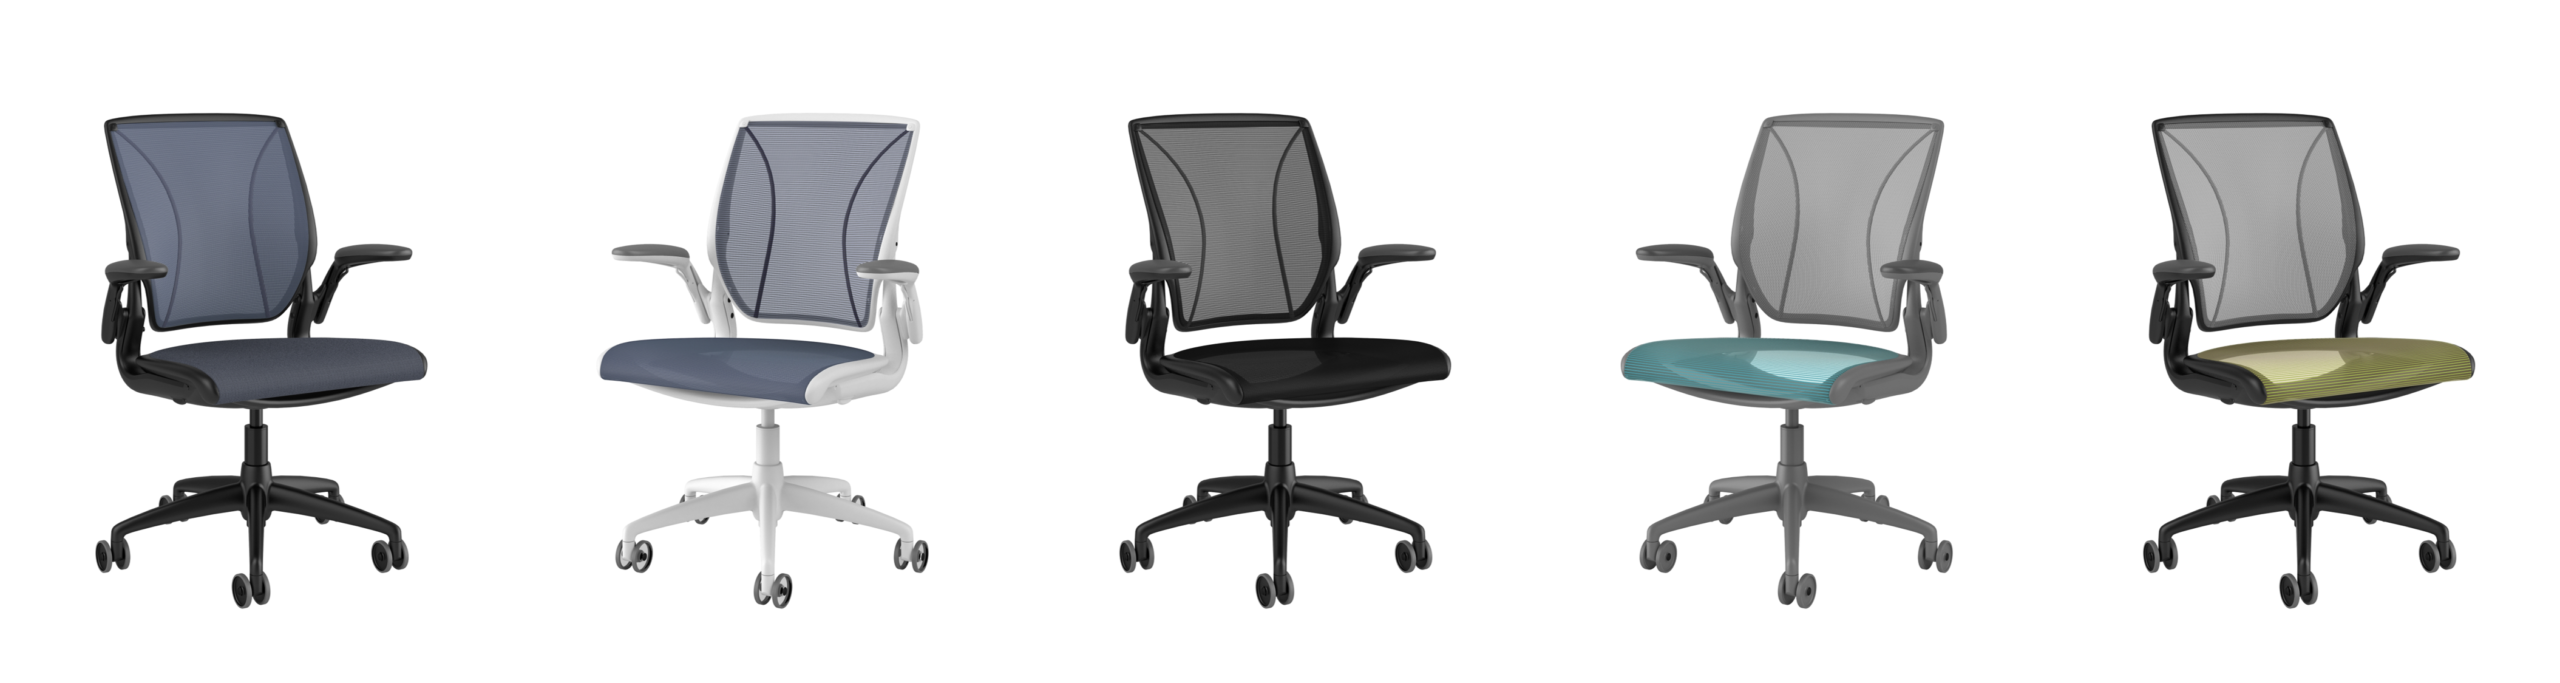 World one task chair work-from-home exclusive